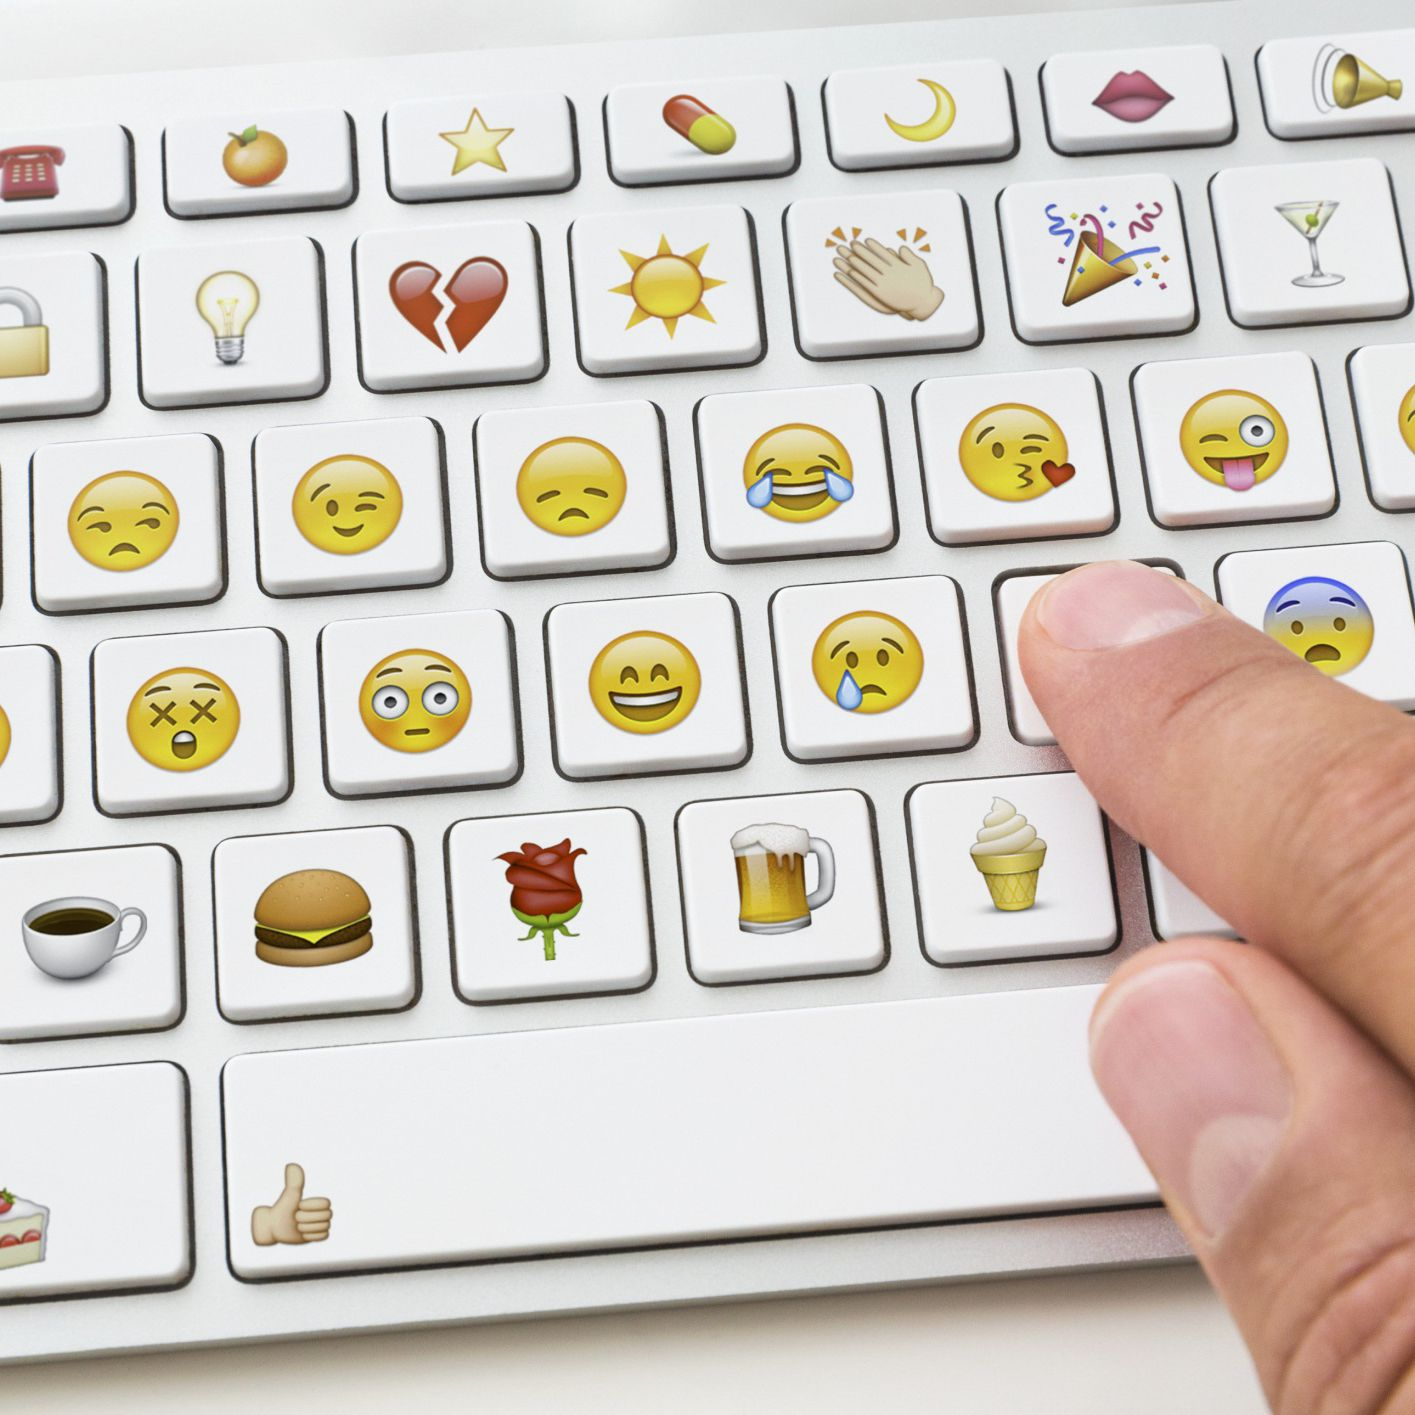 History of Emoticons and Emoji